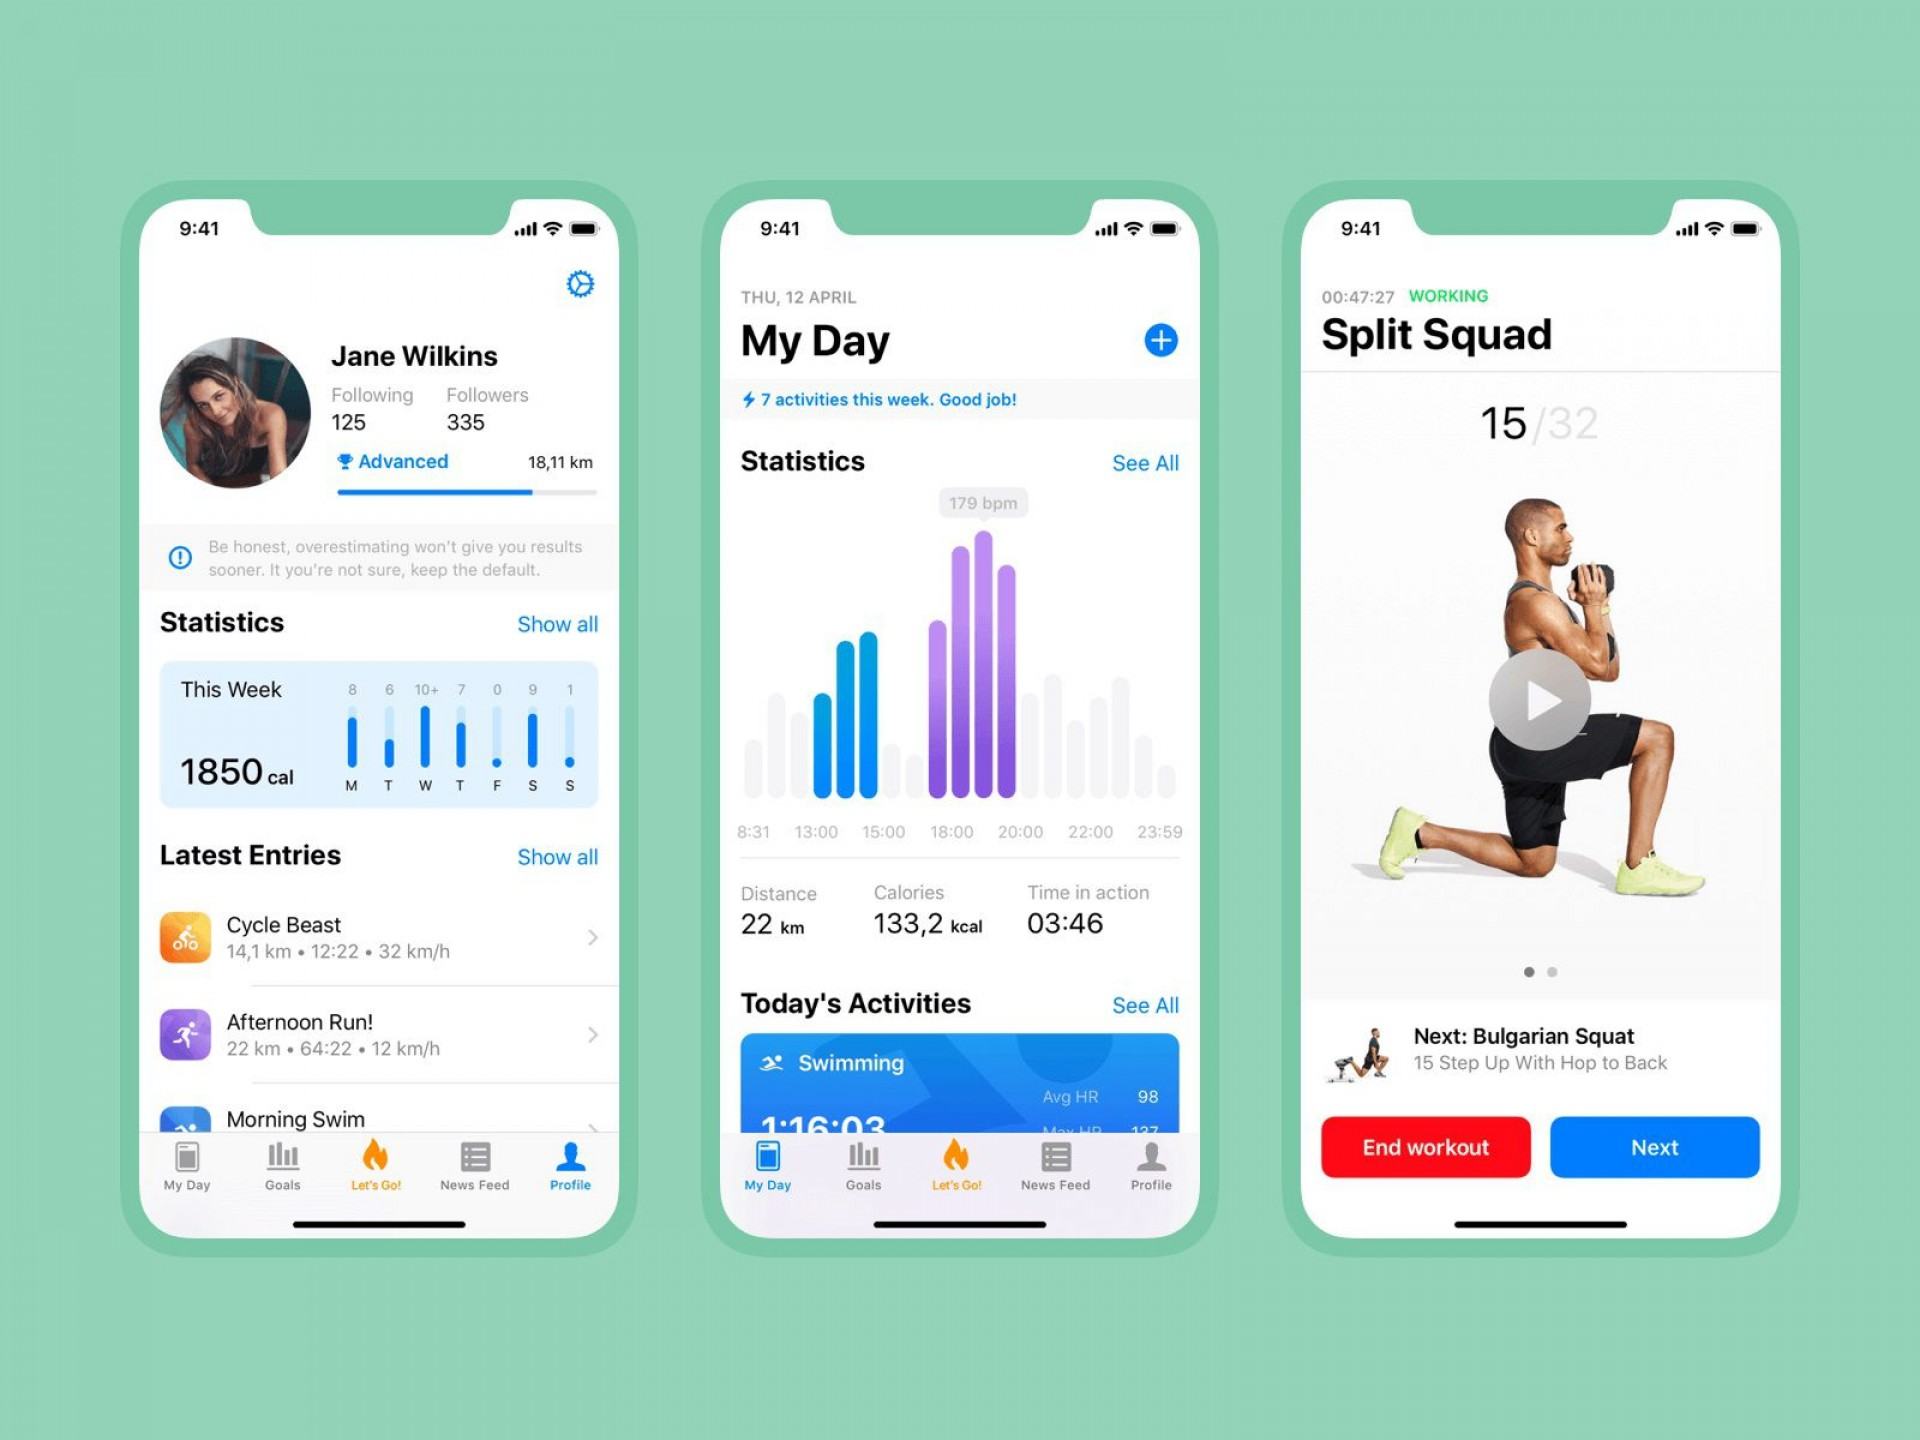 003 Wonderful Iphone App Design Template High Resolution  Templates Io Sketch Psd Free Download1920